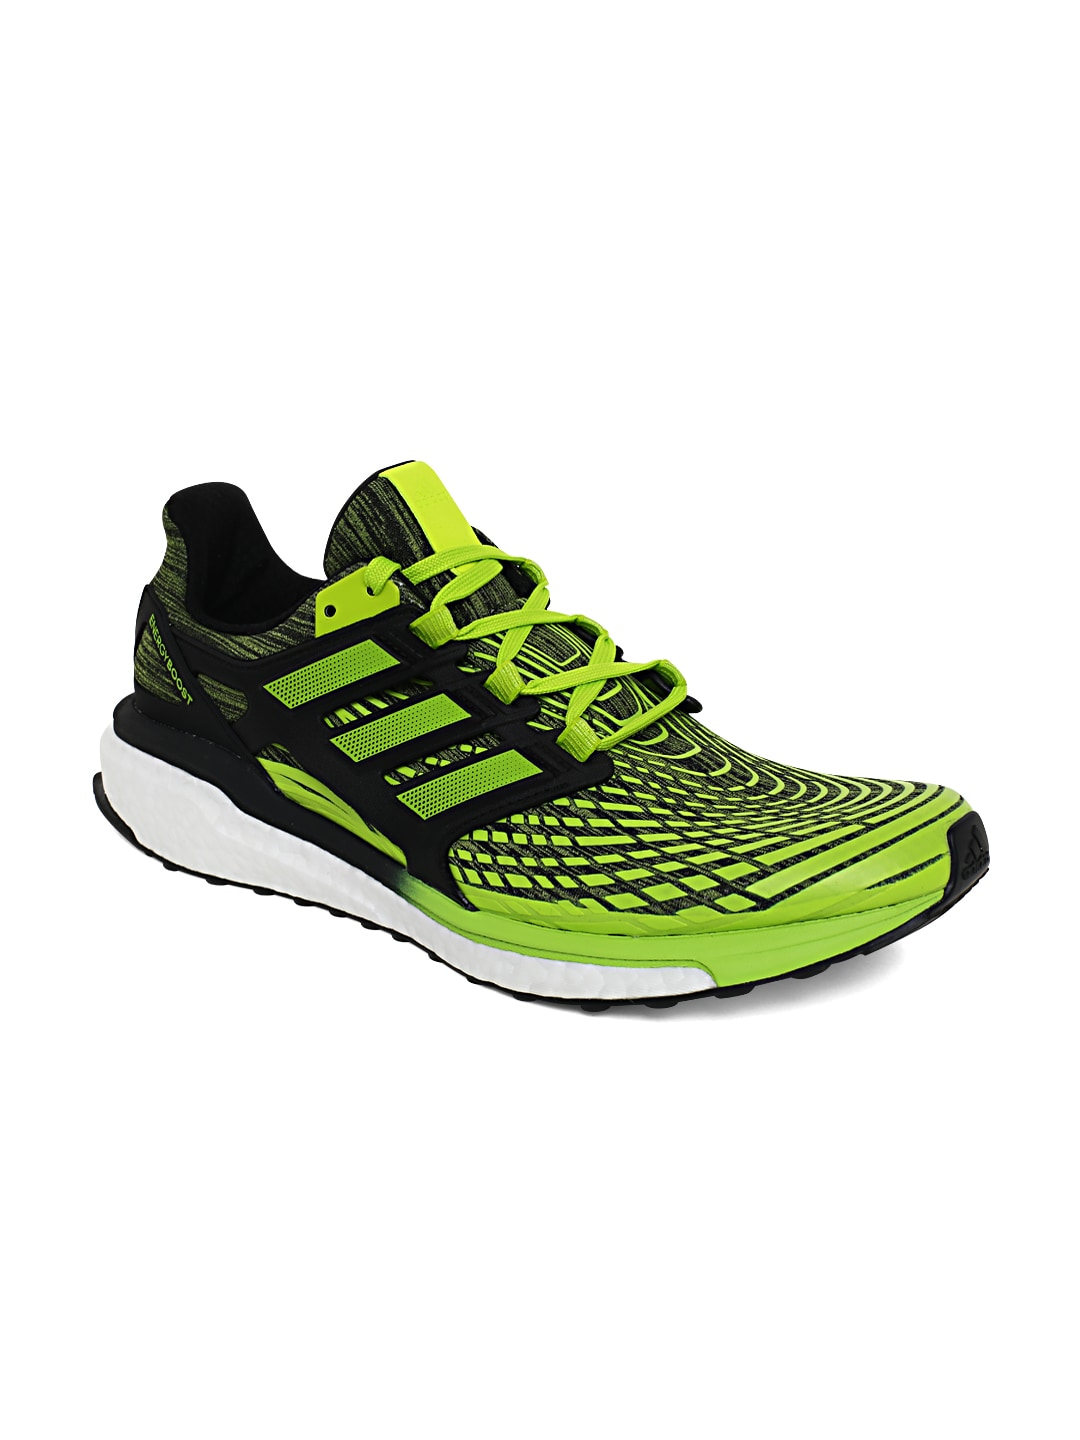 a540f4bd0d0d0e Adidas Boost - Buy Adidas Boost online in India